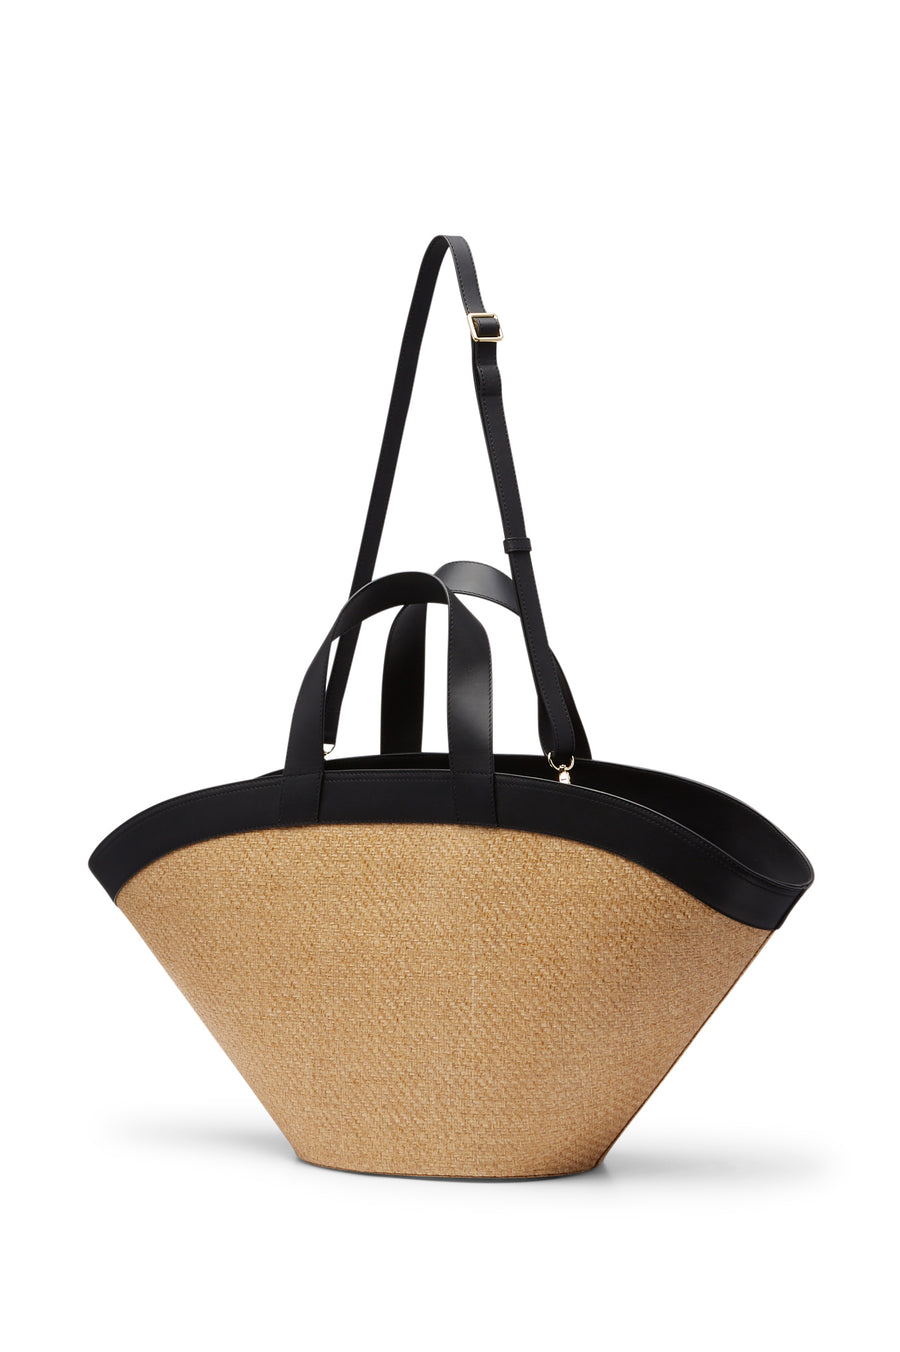 This basket style bag is crafted from straw and trimmed with leather detailing for added luxury.